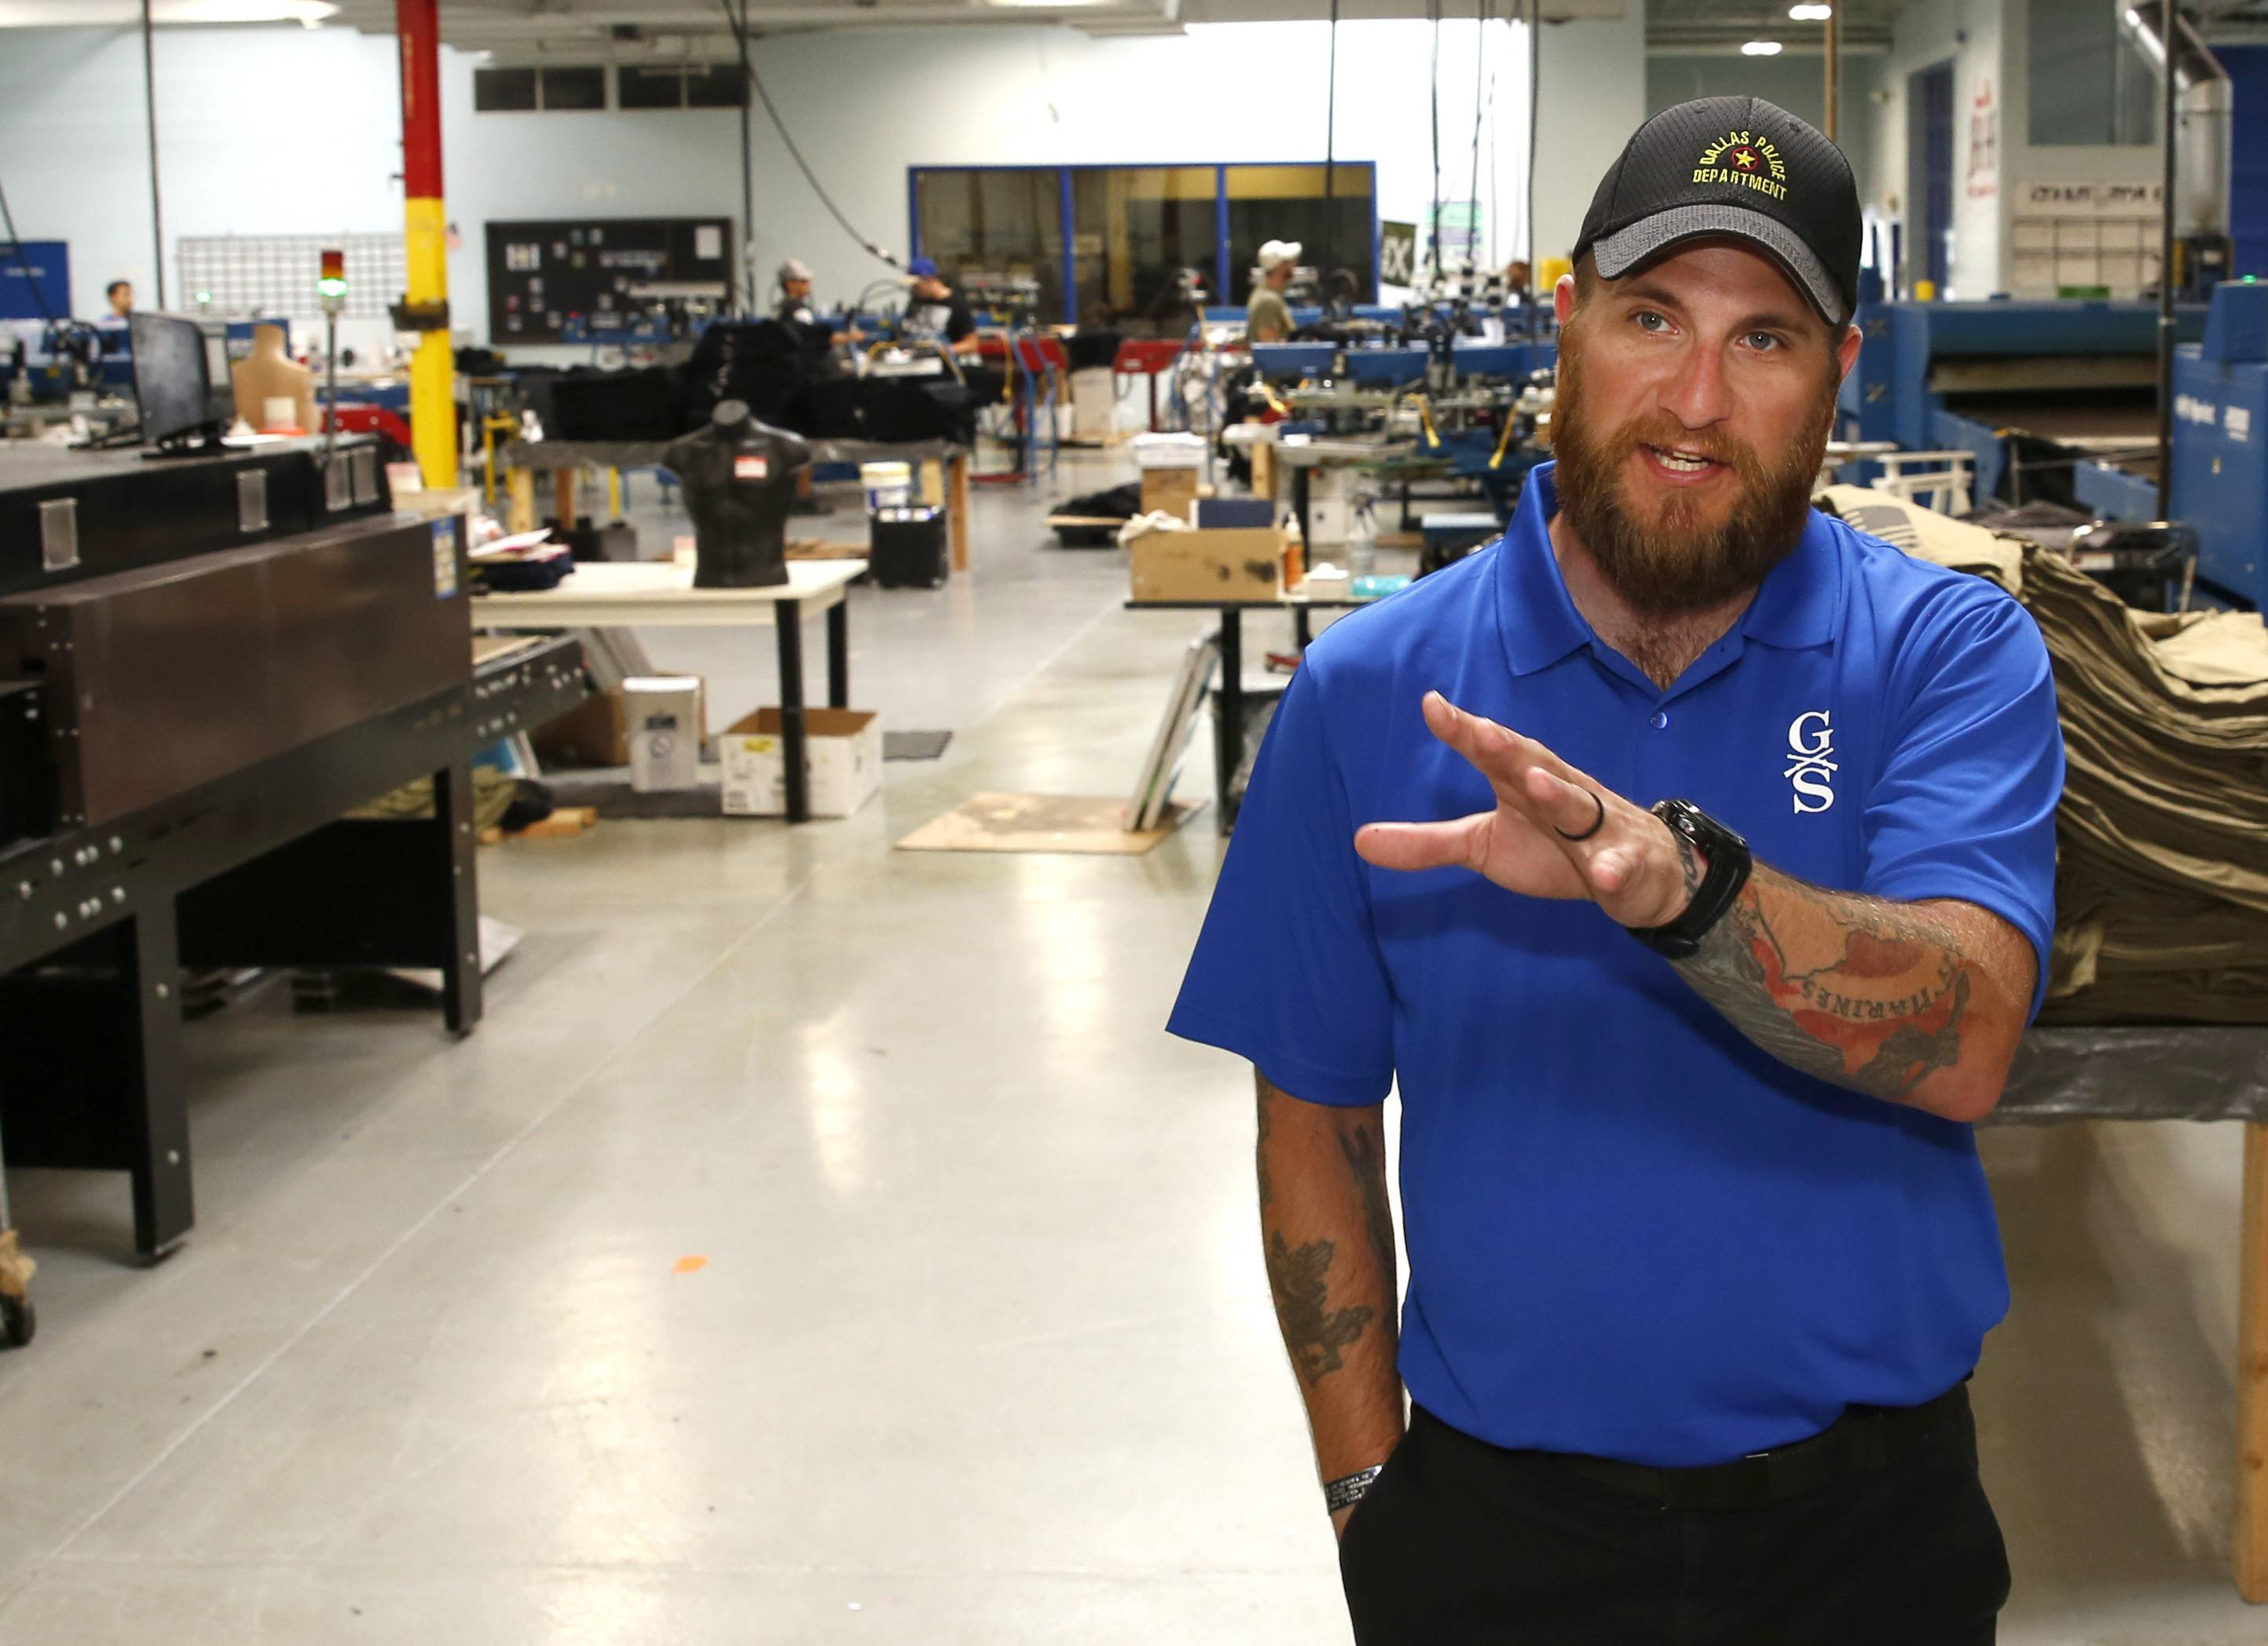 Ex-Marine Tim Jensen started folding shirts at Grunt Style nearly four years ago and now is chief operating officer of the Carol Stream apparel company, where 60 percent of the employees are military veterans.